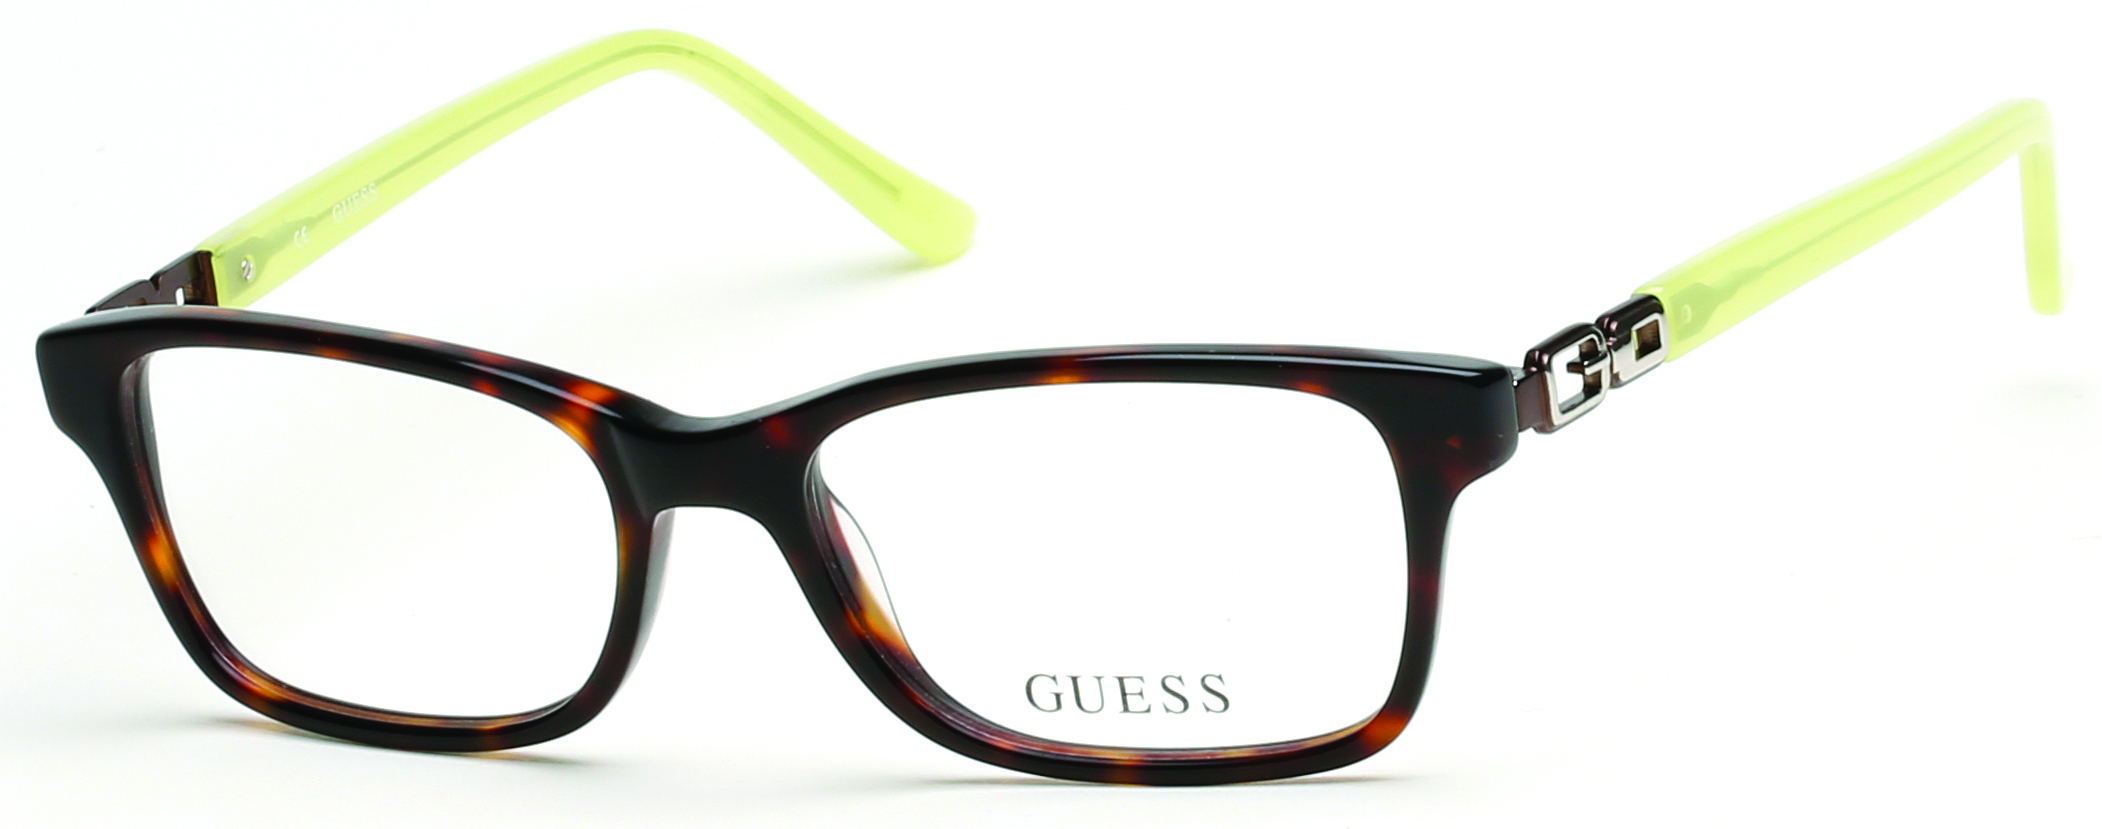 a26cbc61478 Eyewear for Kids - 11-13 years Guess - Optiwow